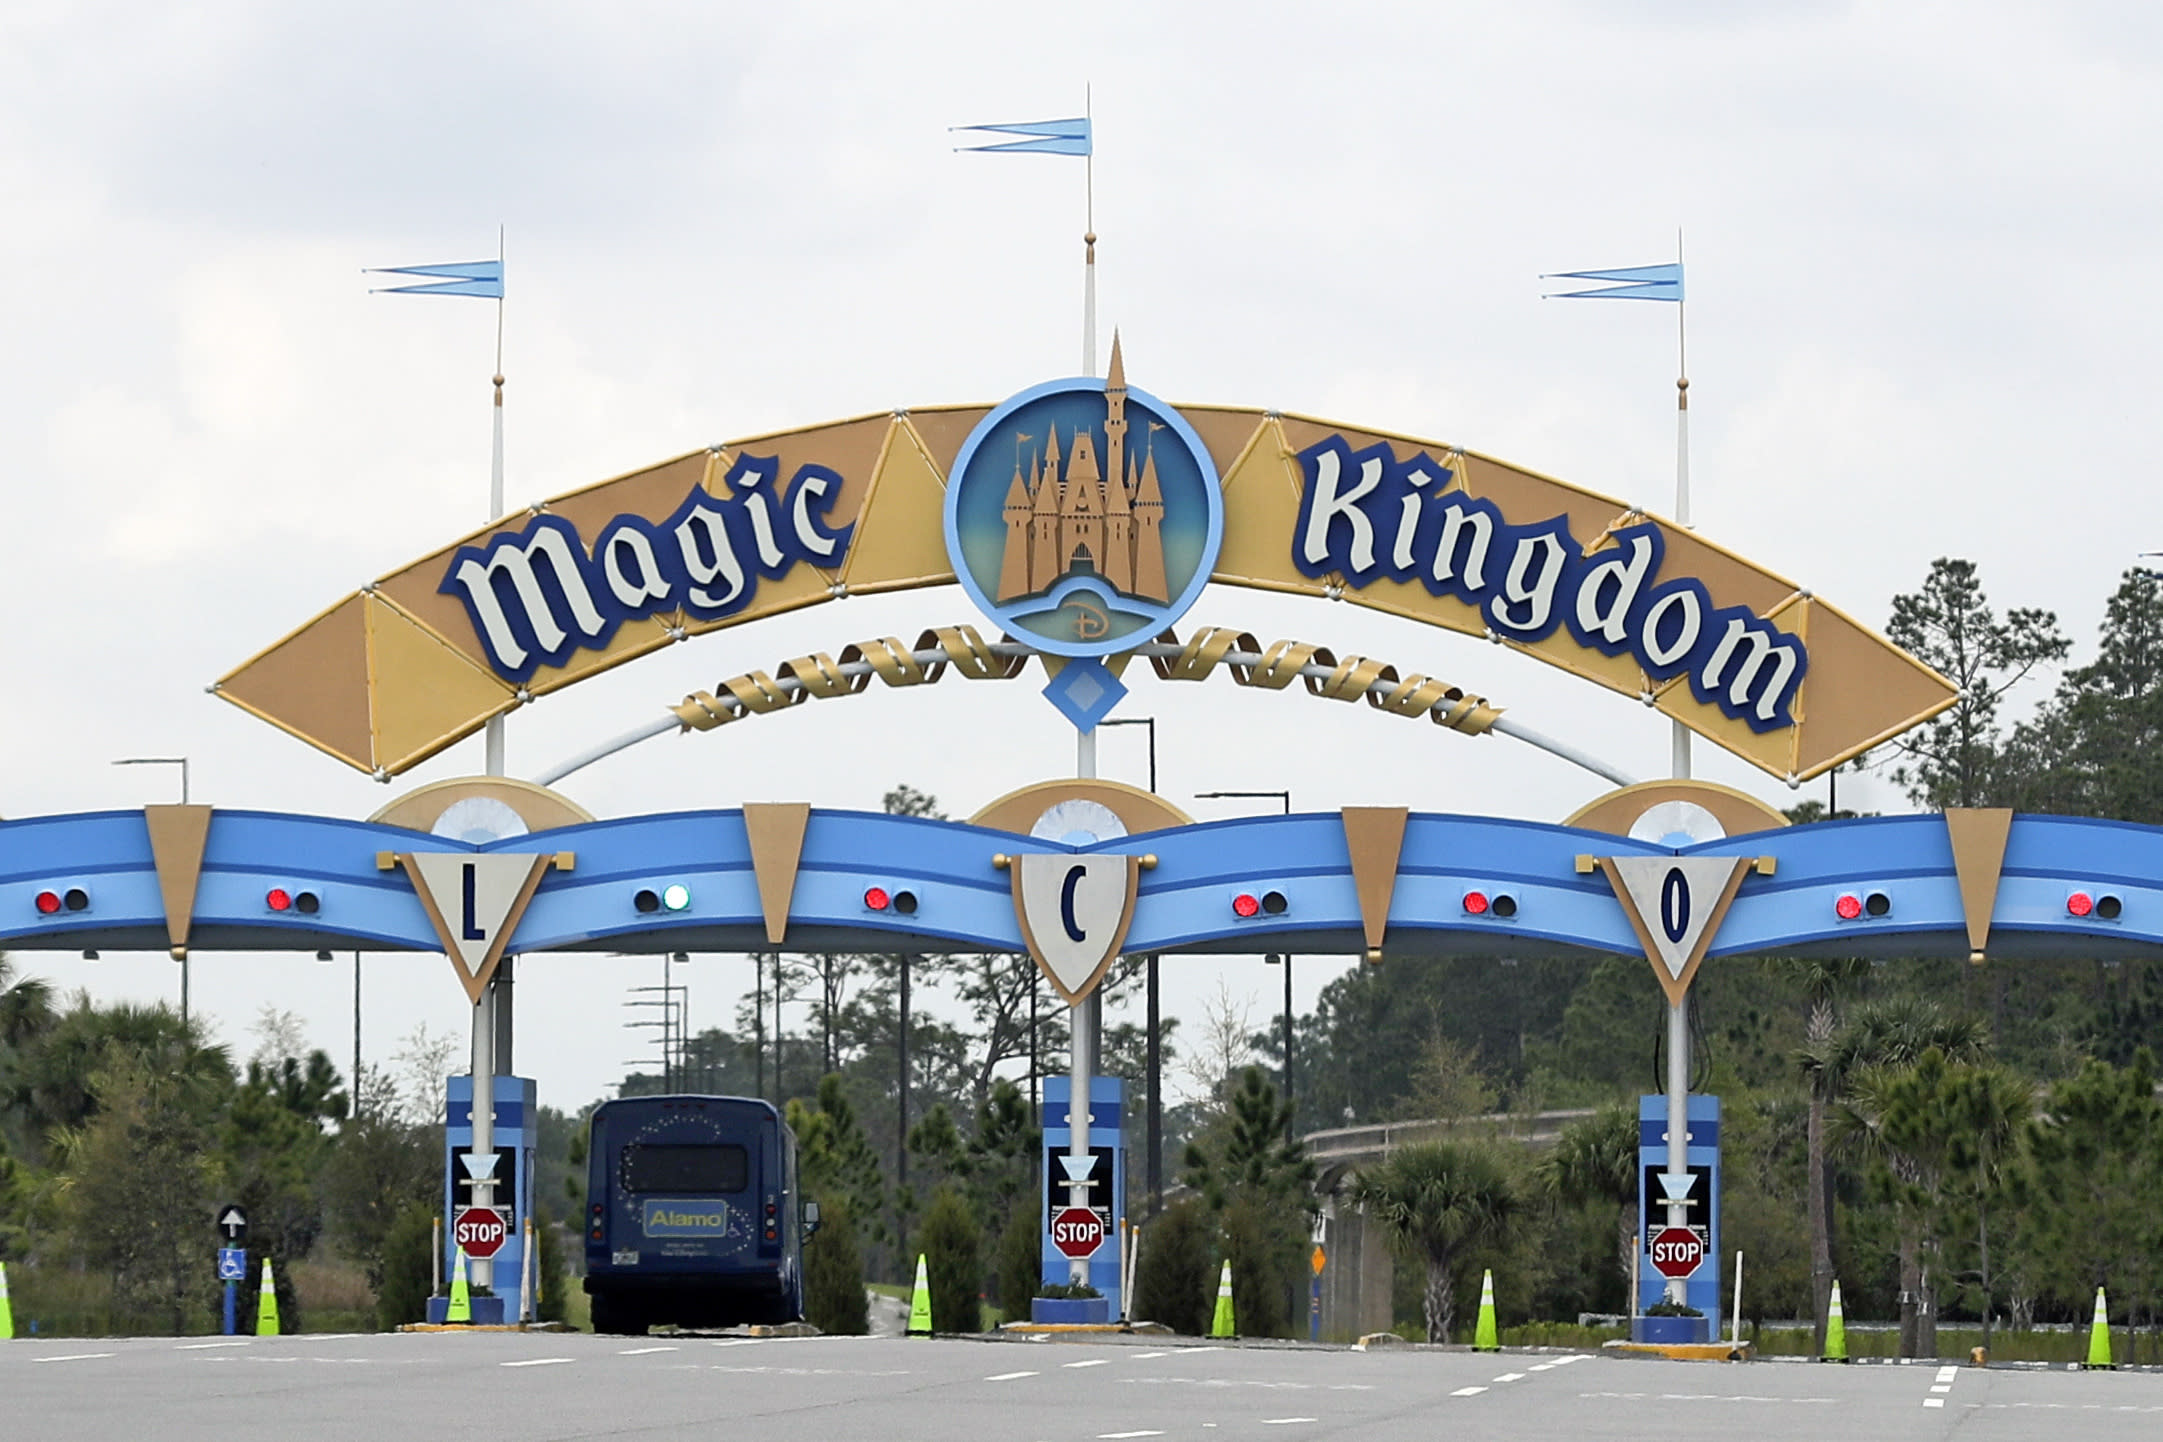 """FILE - In this March 16, 2020, file photo, the entrance to the parking lot at the Magic Kingdom at Walt Disney World is closed in Lake Buena Vista, Fla. The Splash Mountain ride at Disney parks in California and Florida is being recast. Disney officials said the ride would no longer be tied to the 1946 movie, """"Song of the South,"""" which many view as racist. Instead, the revamped ride will be inspired by the 2009 Disney film, """"The Princess and the Frog,"""" which has an African-American female lead. (AP Photo/John Raoux, File)"""